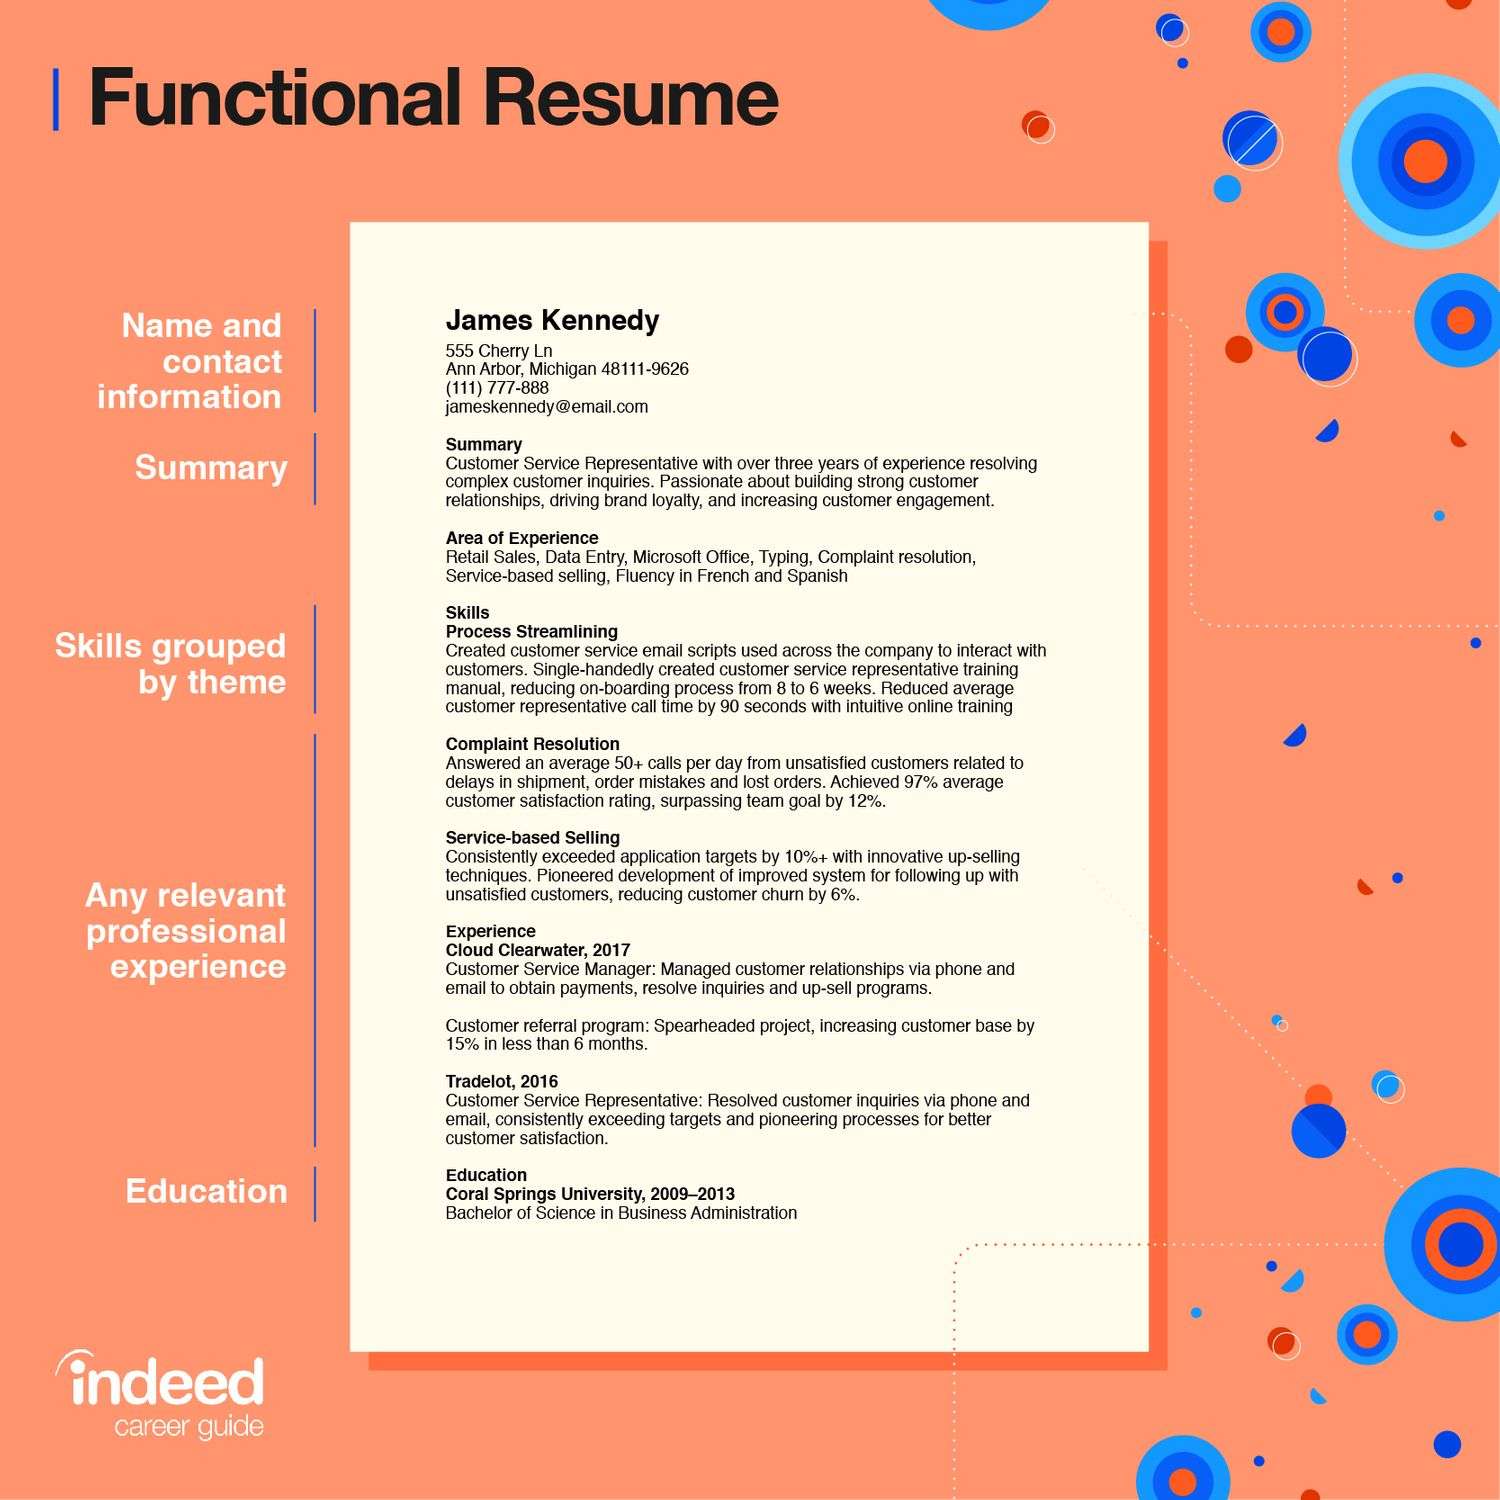 functional resume definition tips and examples indeed best templates resized locksmith Resume Best Functional Resume Templates